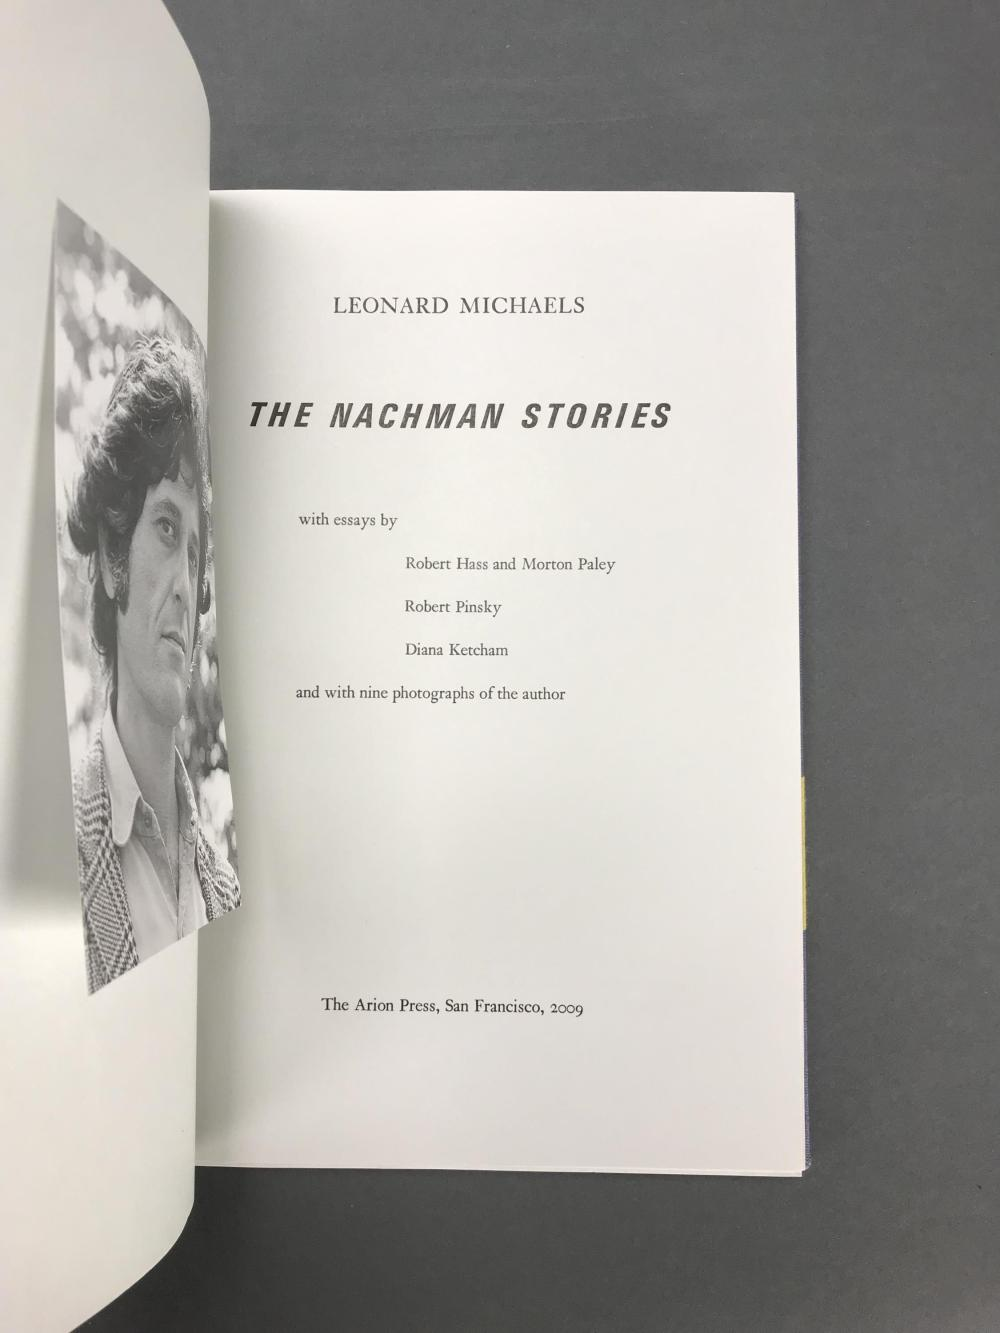 Lot 197: Arion Press. Nachman Stories. Number 33 of 300.